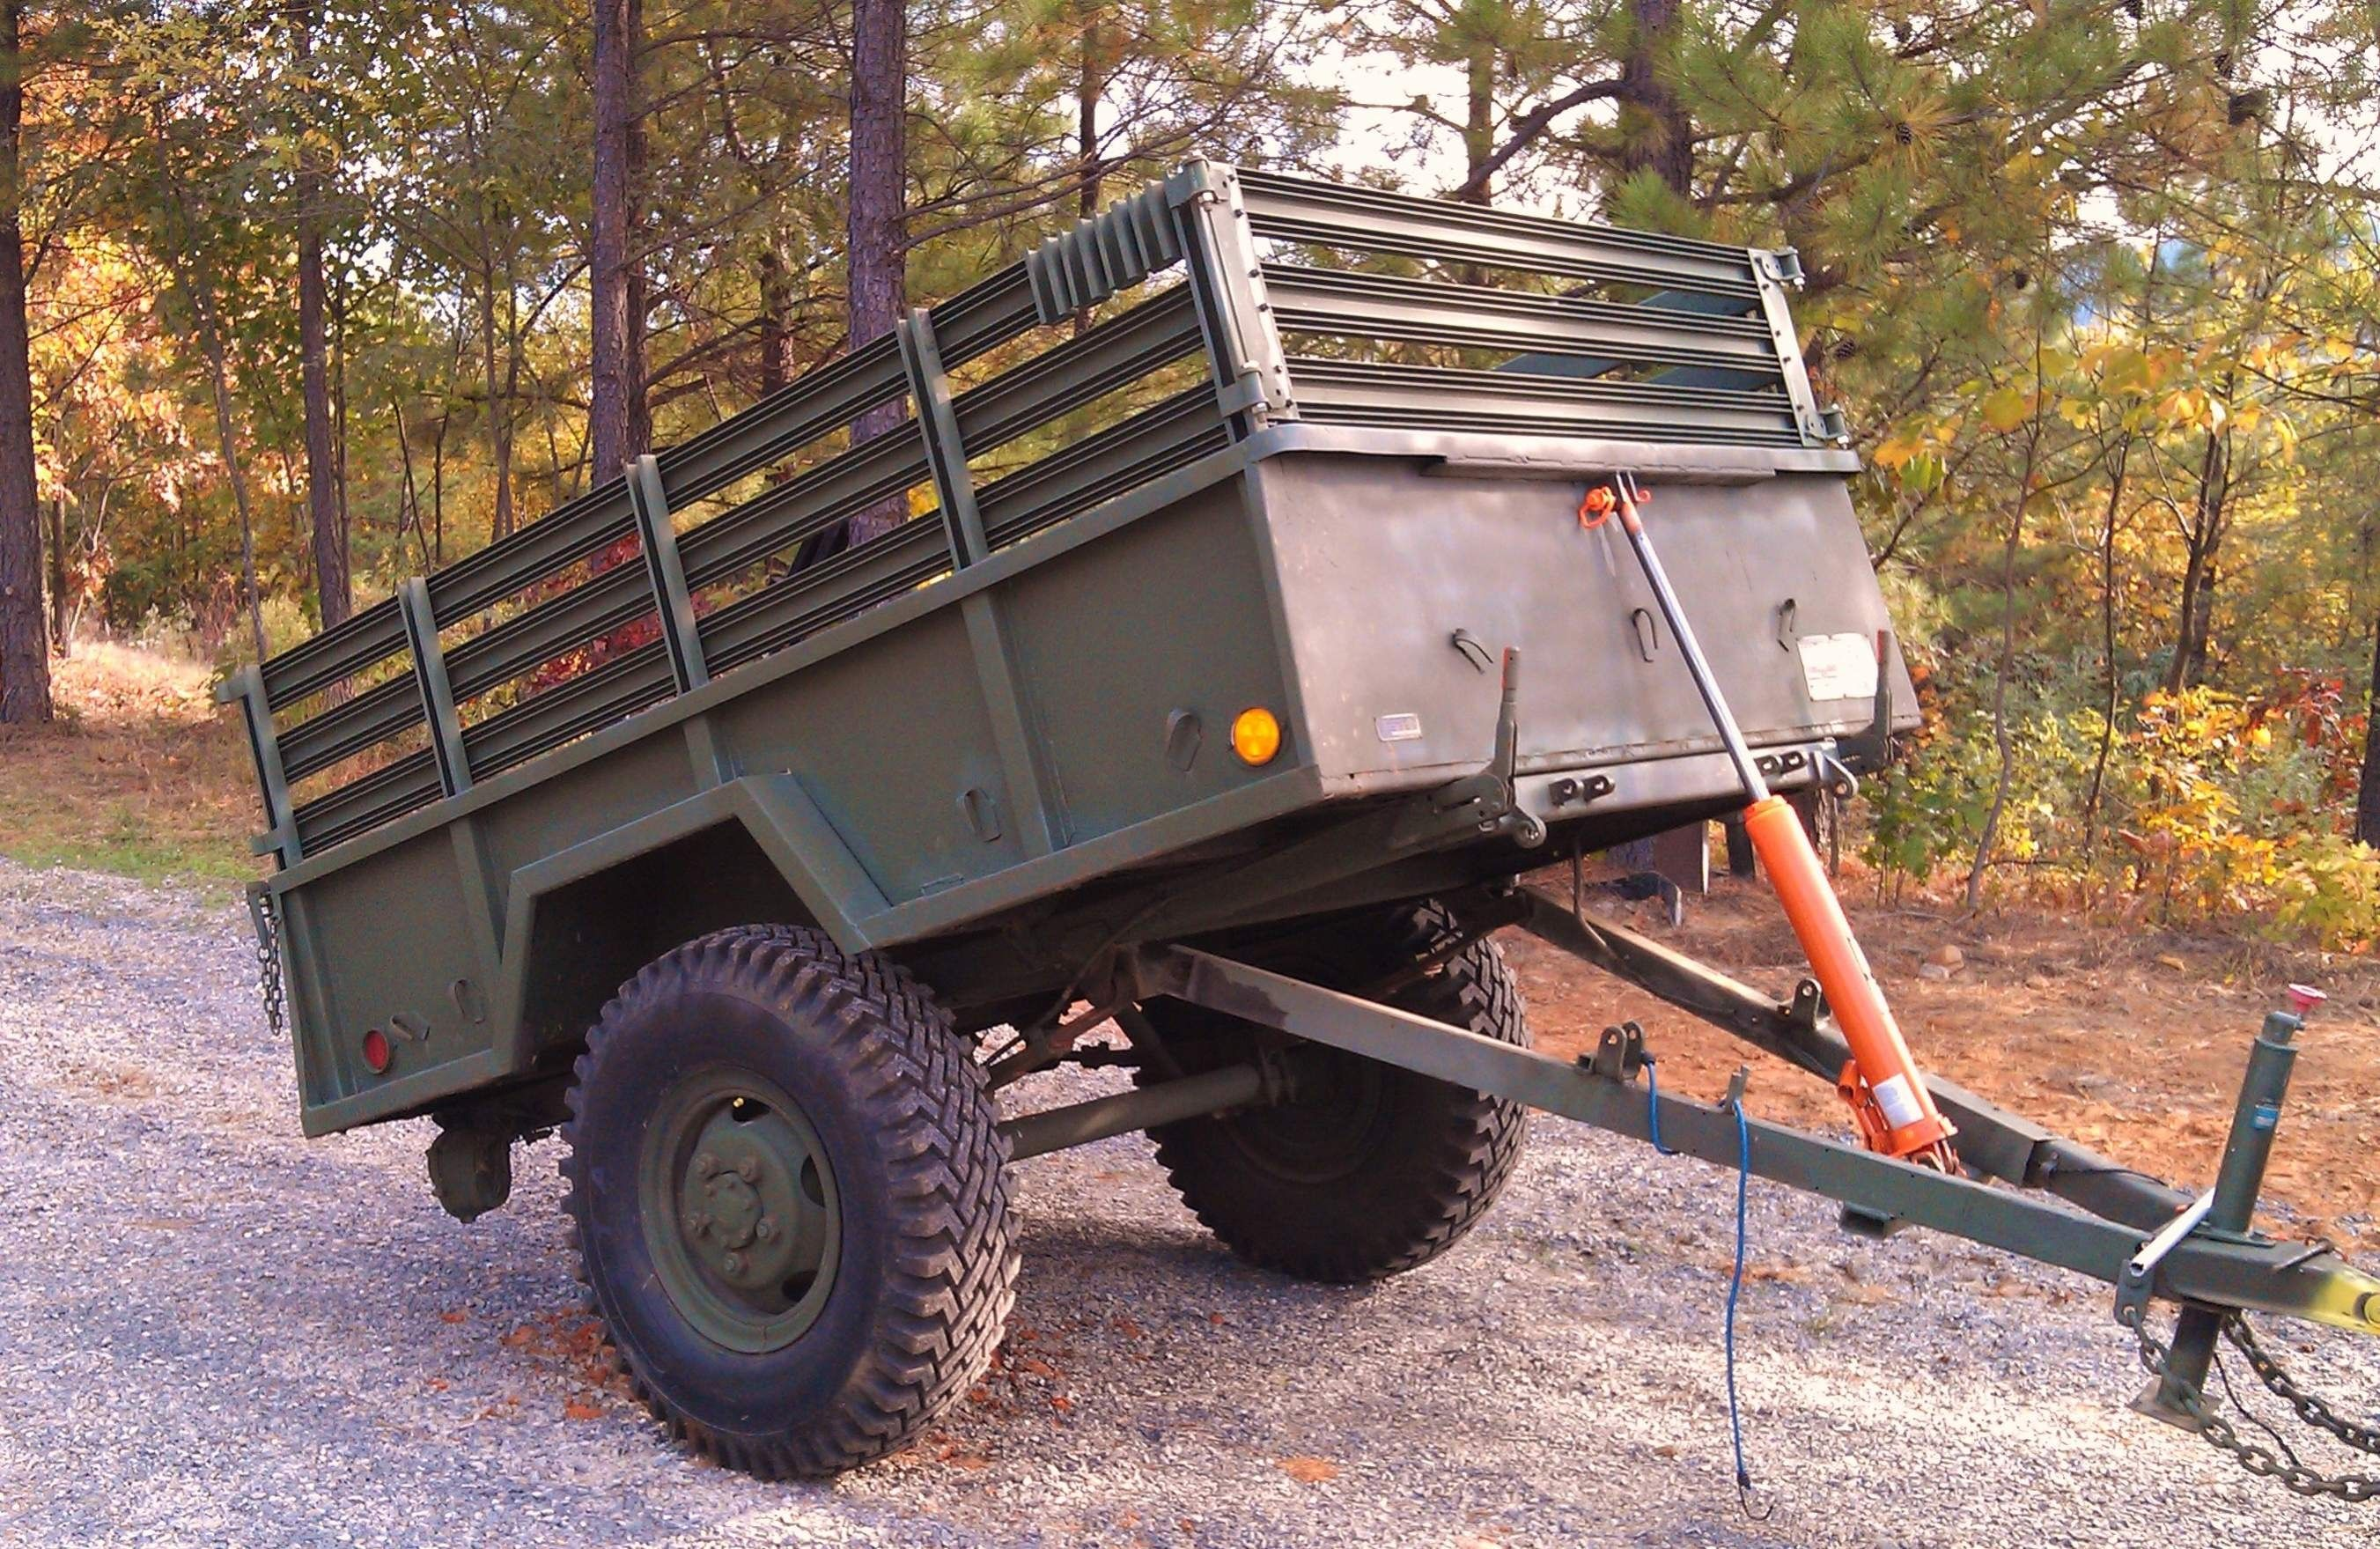 Pin by Gt500 on Military Trailer Dump trailers, Utility